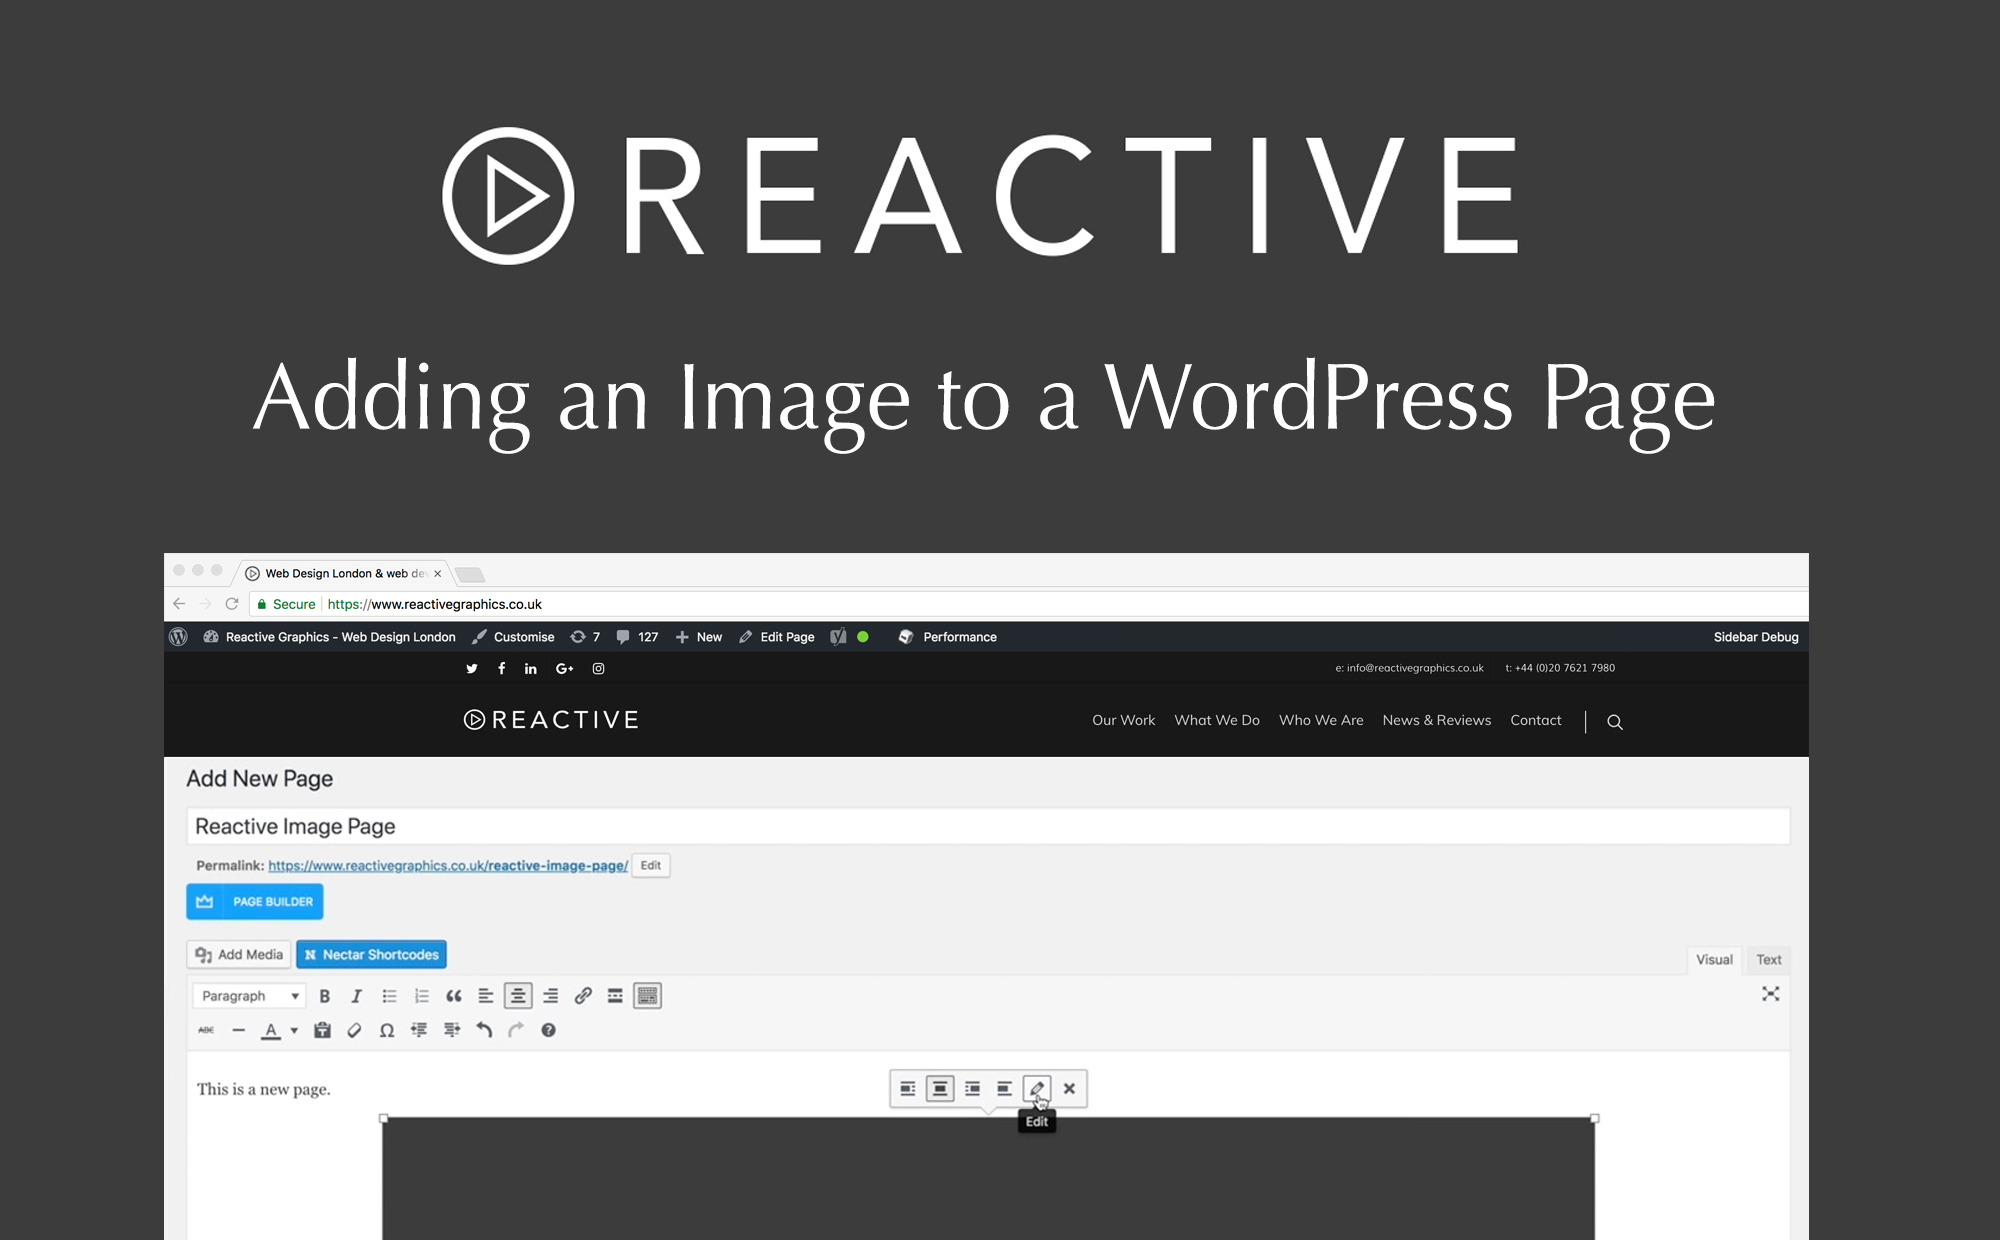 Adding an image to a wordpress page